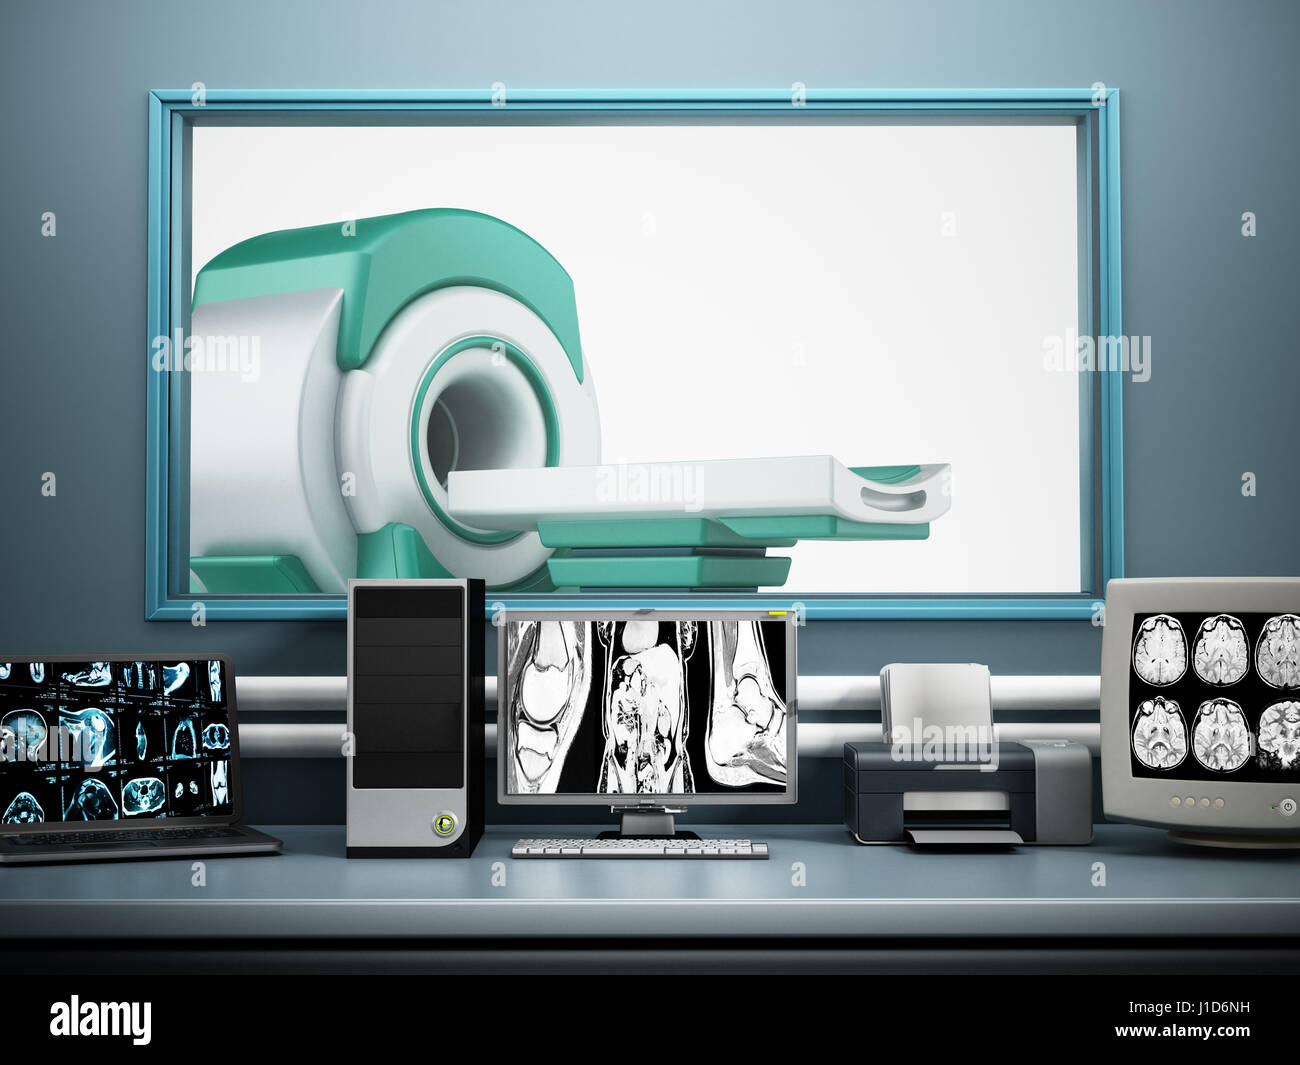 magnetic resonance imaging business Magnetic resonance imaging (mri) tricare online tol is a web-based system that allows tricare beneficiaries to make medical appointments on-line, anytime, 24/7.